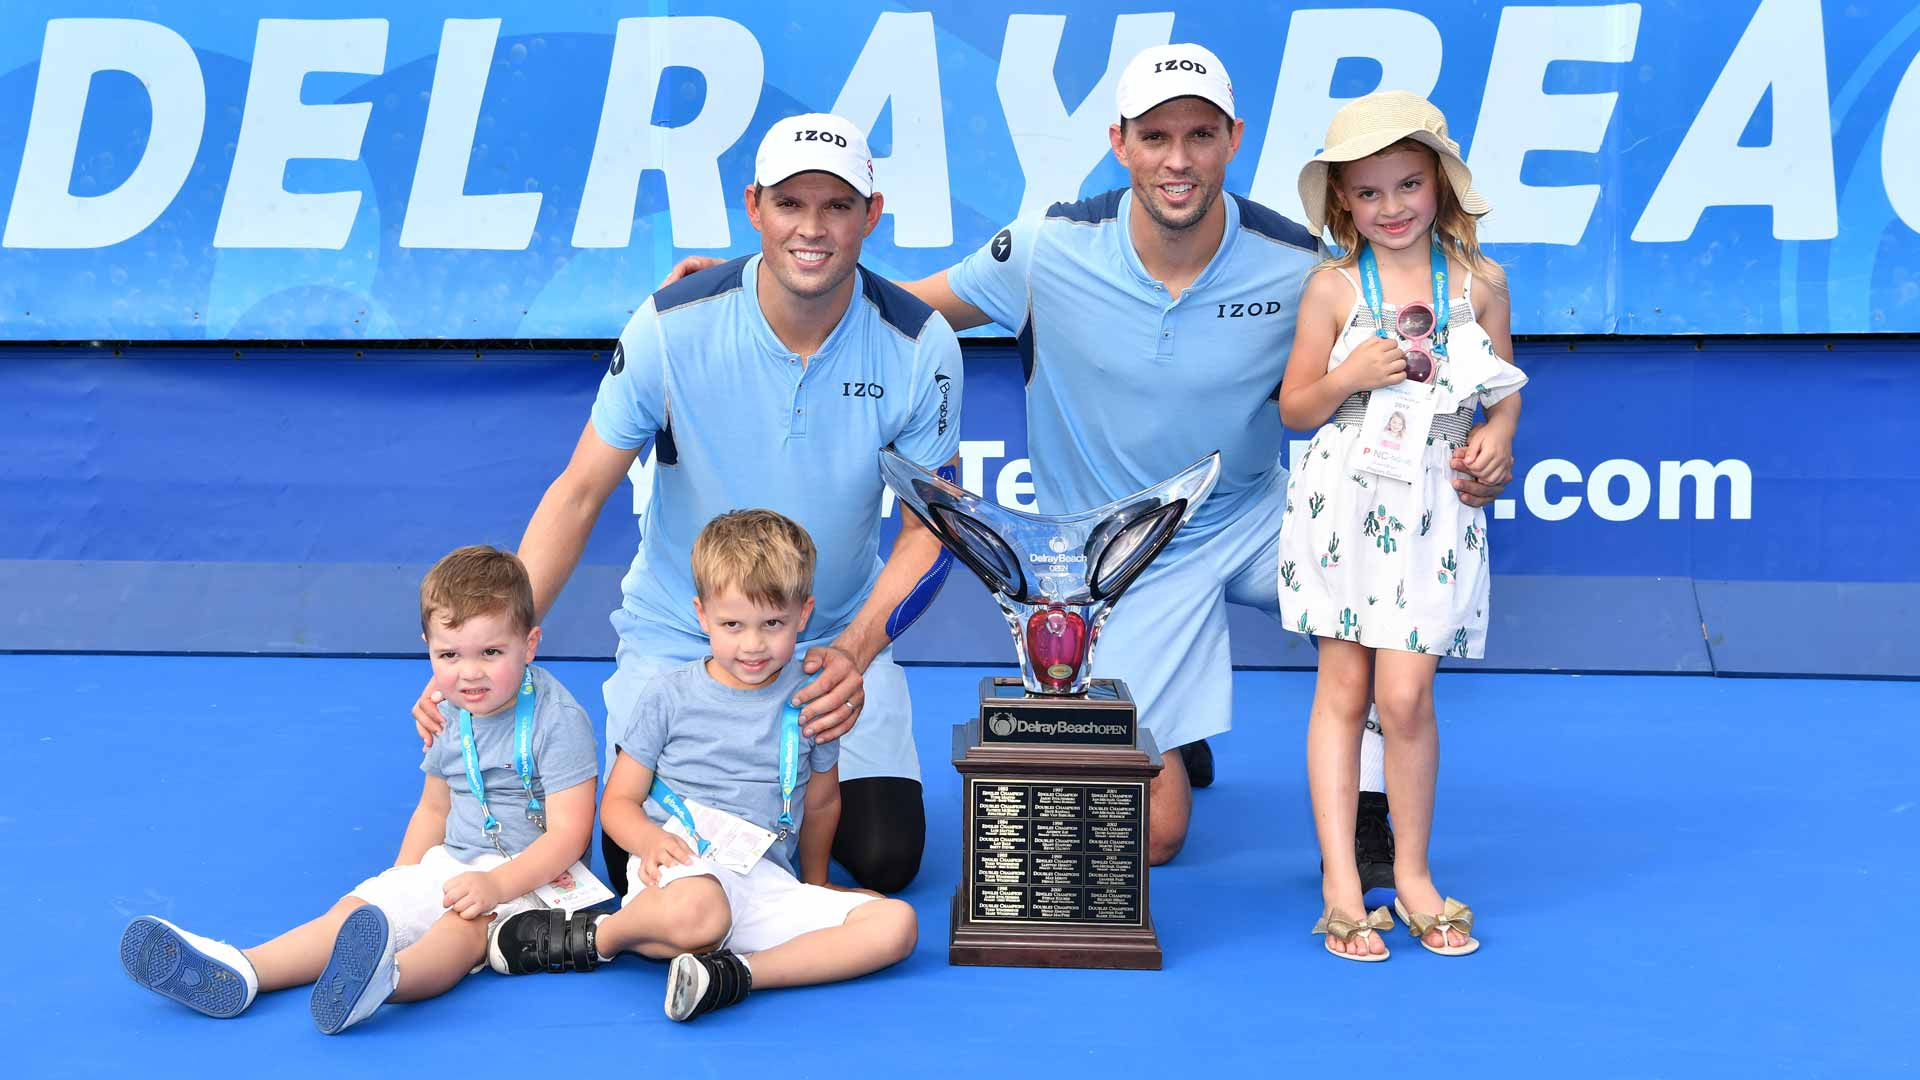 Bob Bryan and Mike Bryan celebrate their Delray Beach victory with Bob's three children.